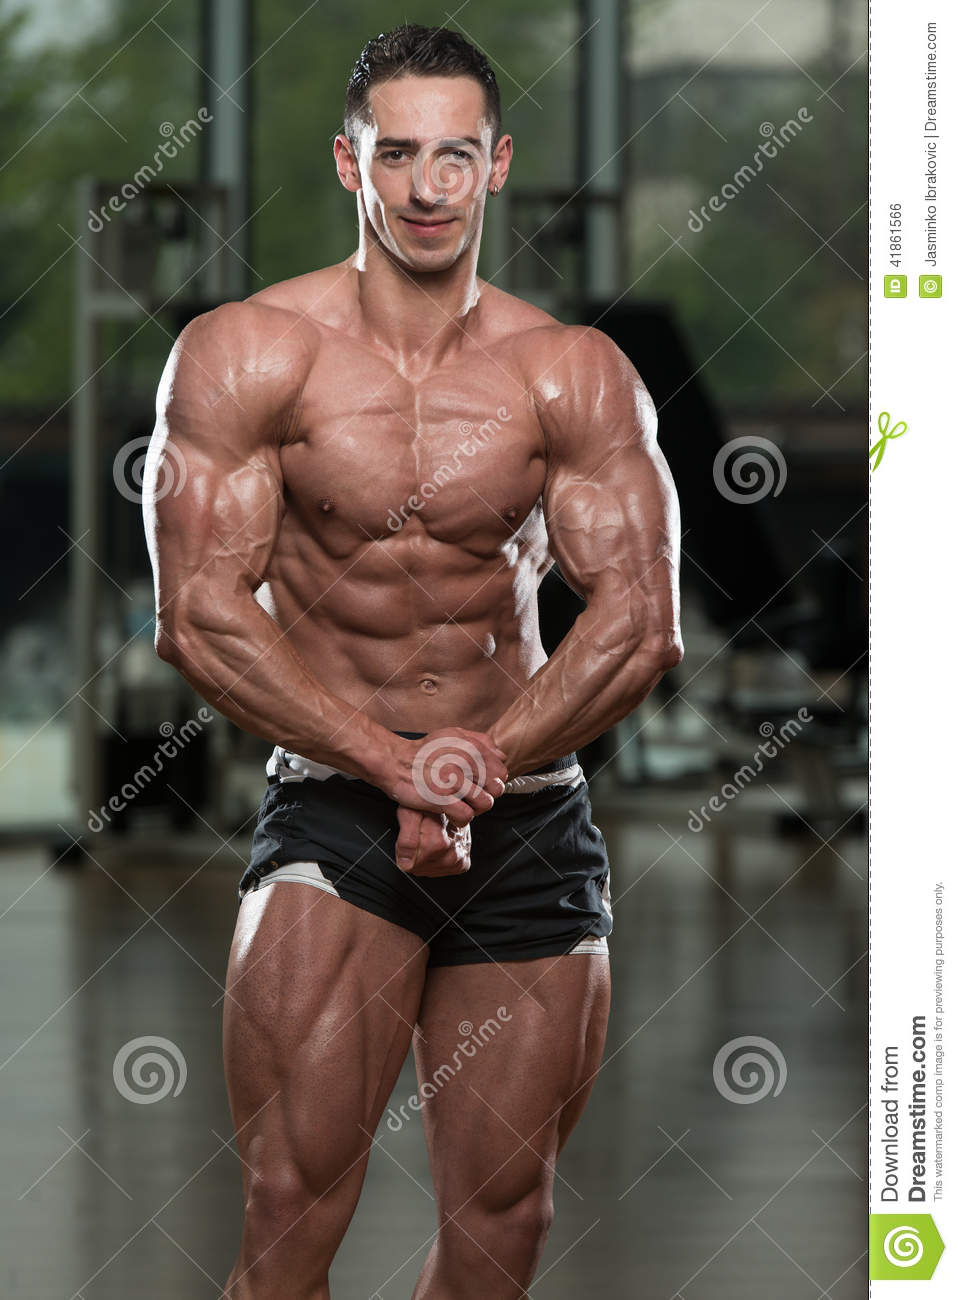 Handsome Body Builder Making Most Muscular Pose Stock